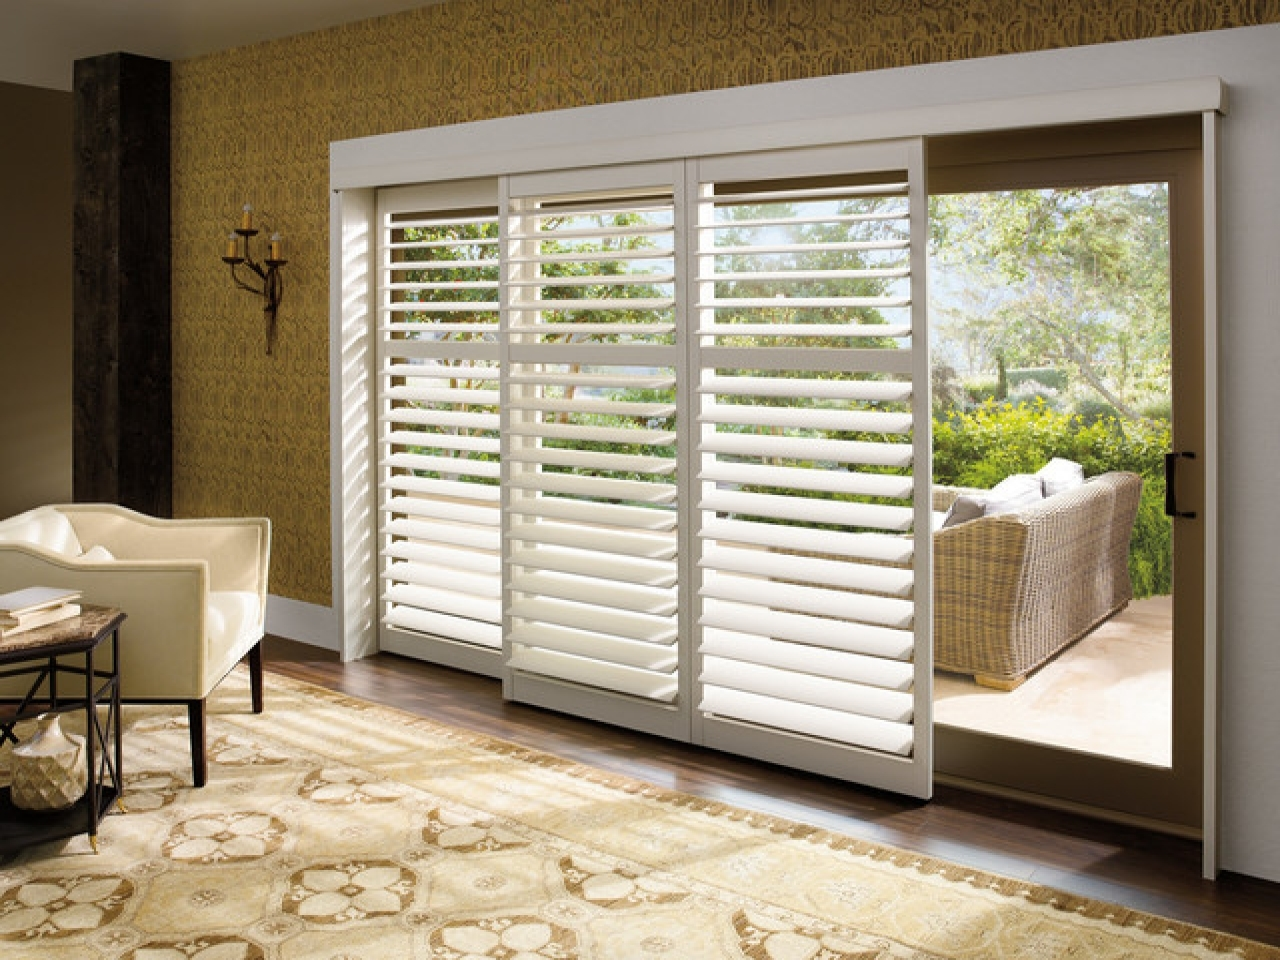 Ideas For Blinds For Sliding Glass Doors1280 X 960